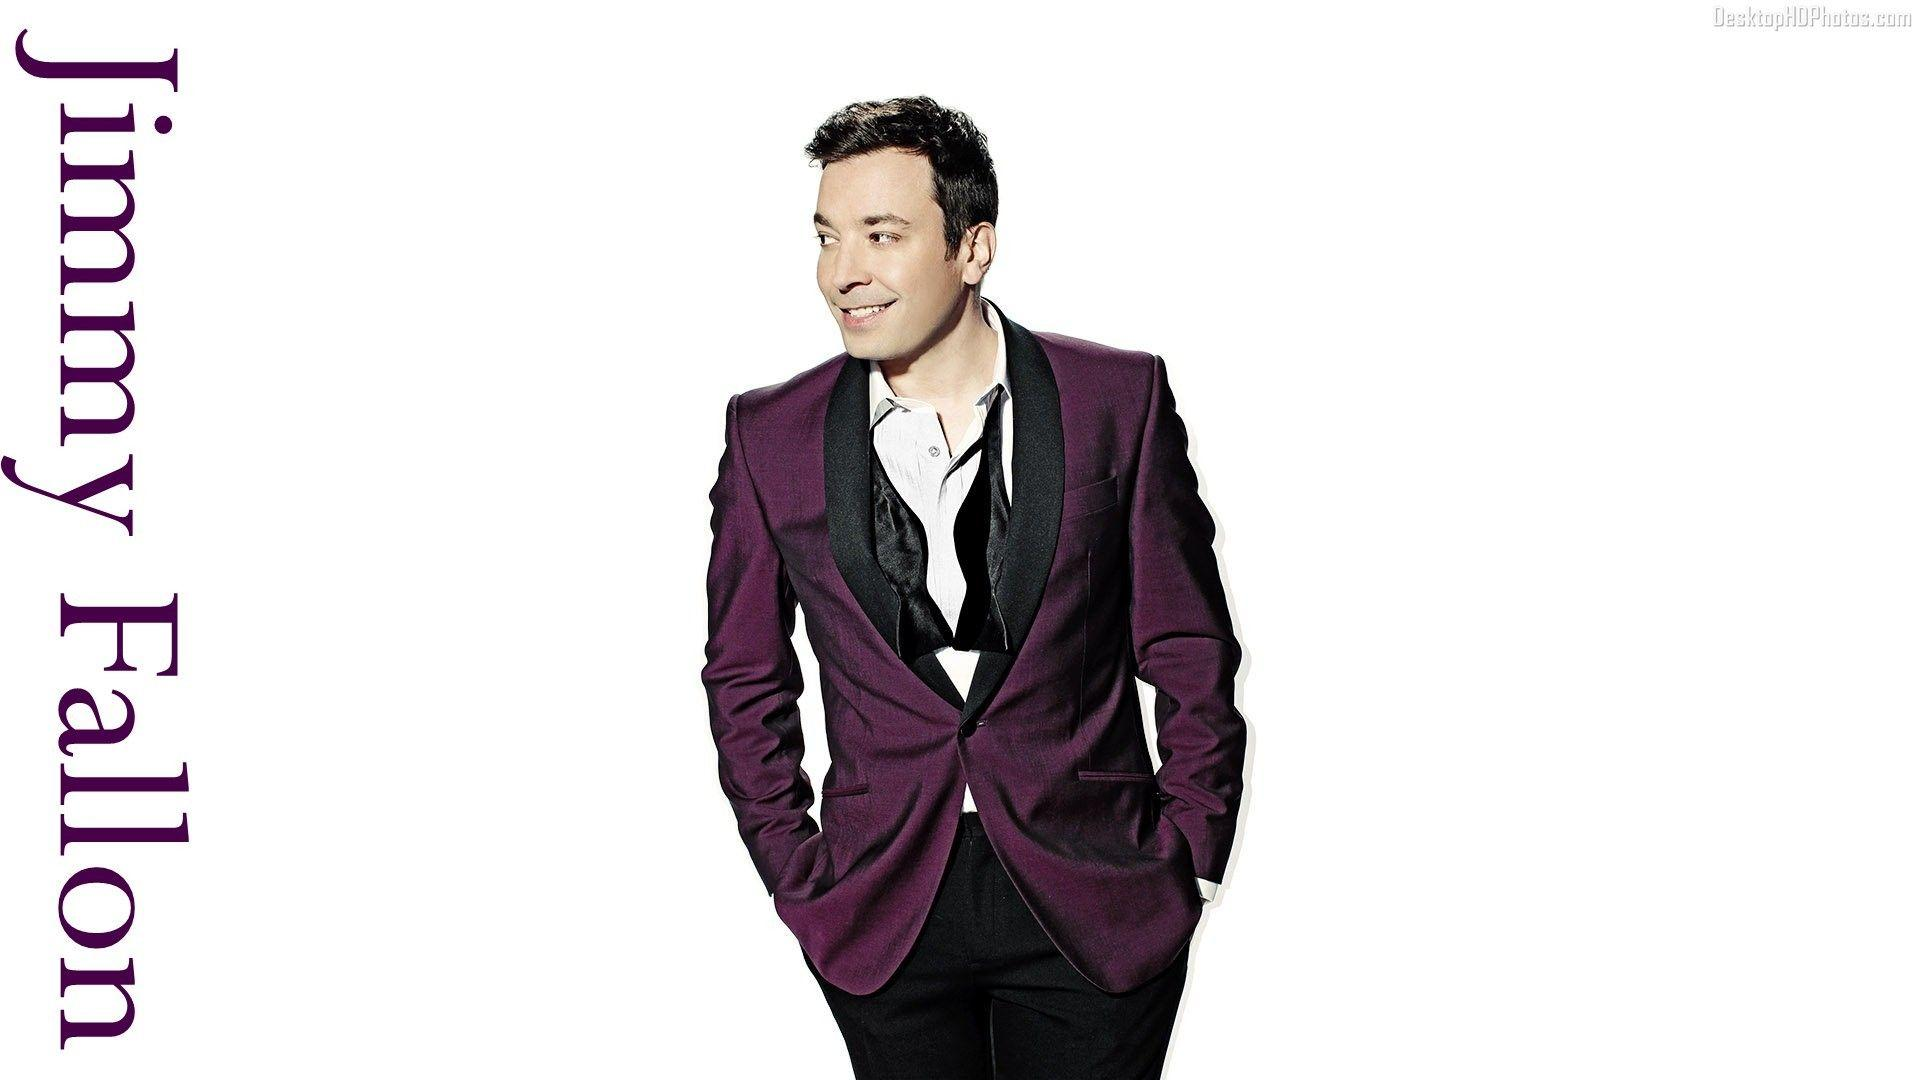 Jimmy Fallon Wallpapers, Pictures, Image